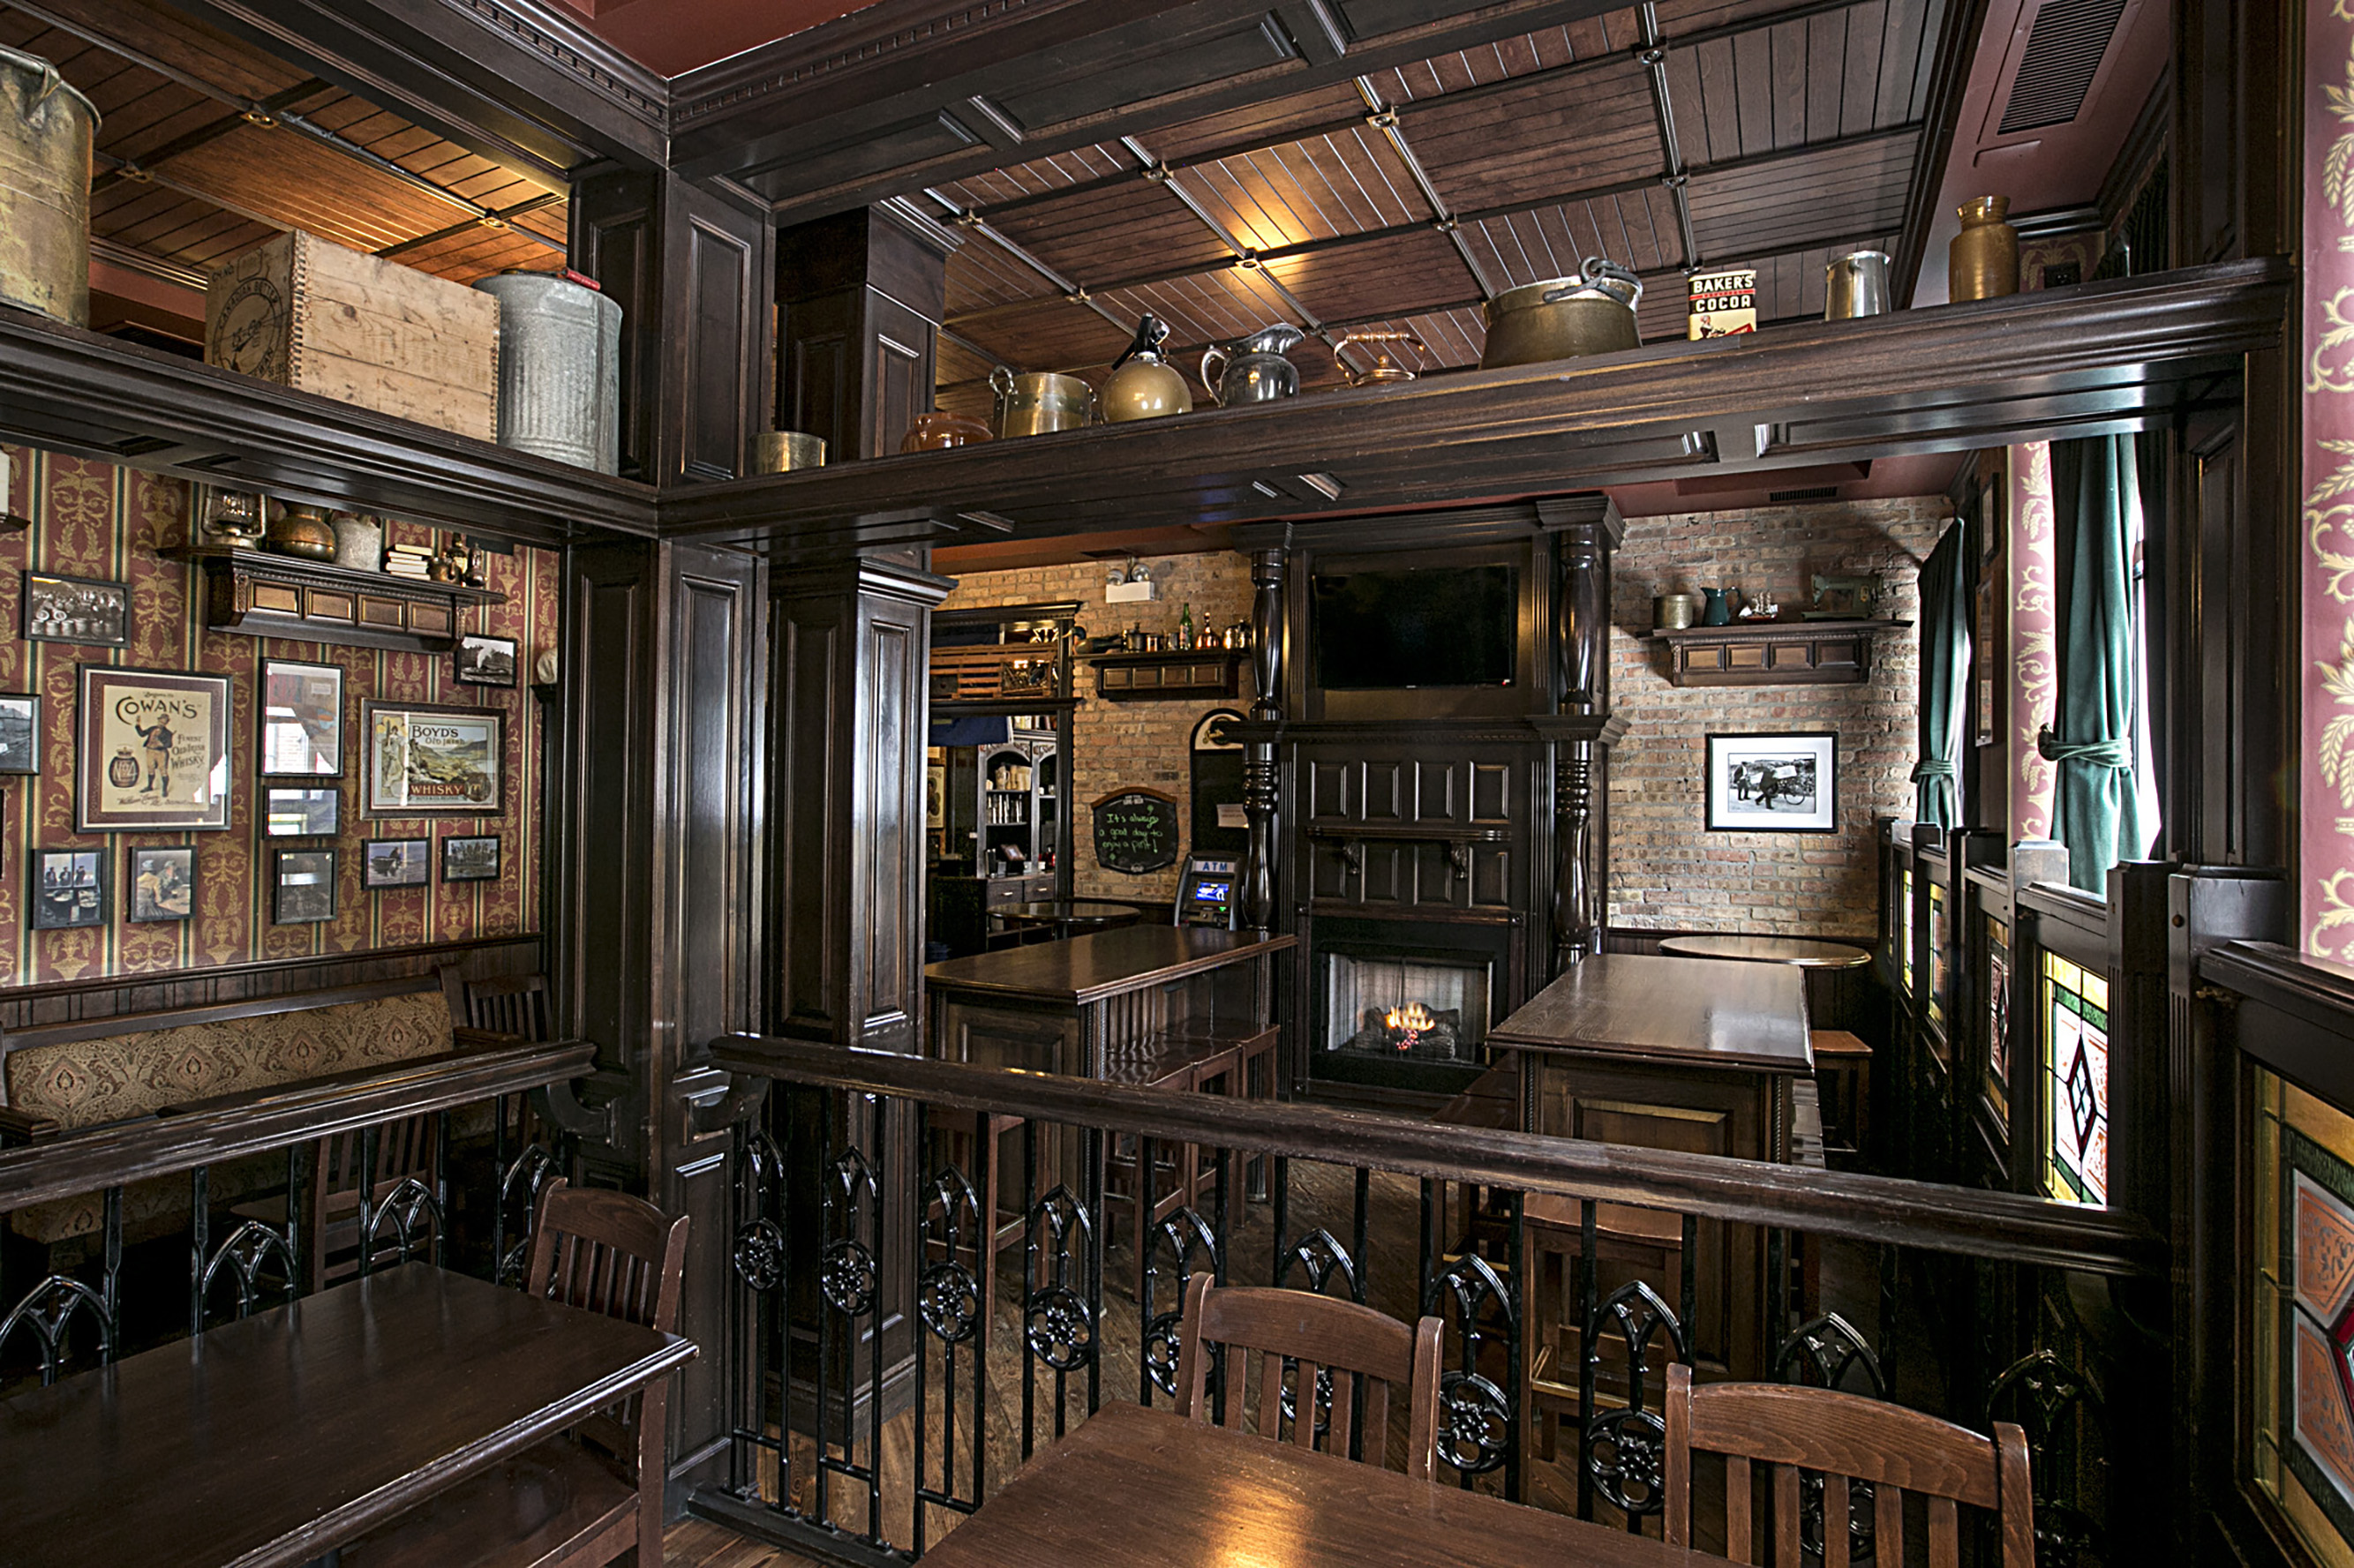 An interior shot of a dark wooded Irish bar. There are tables, chairs, and framed photos.